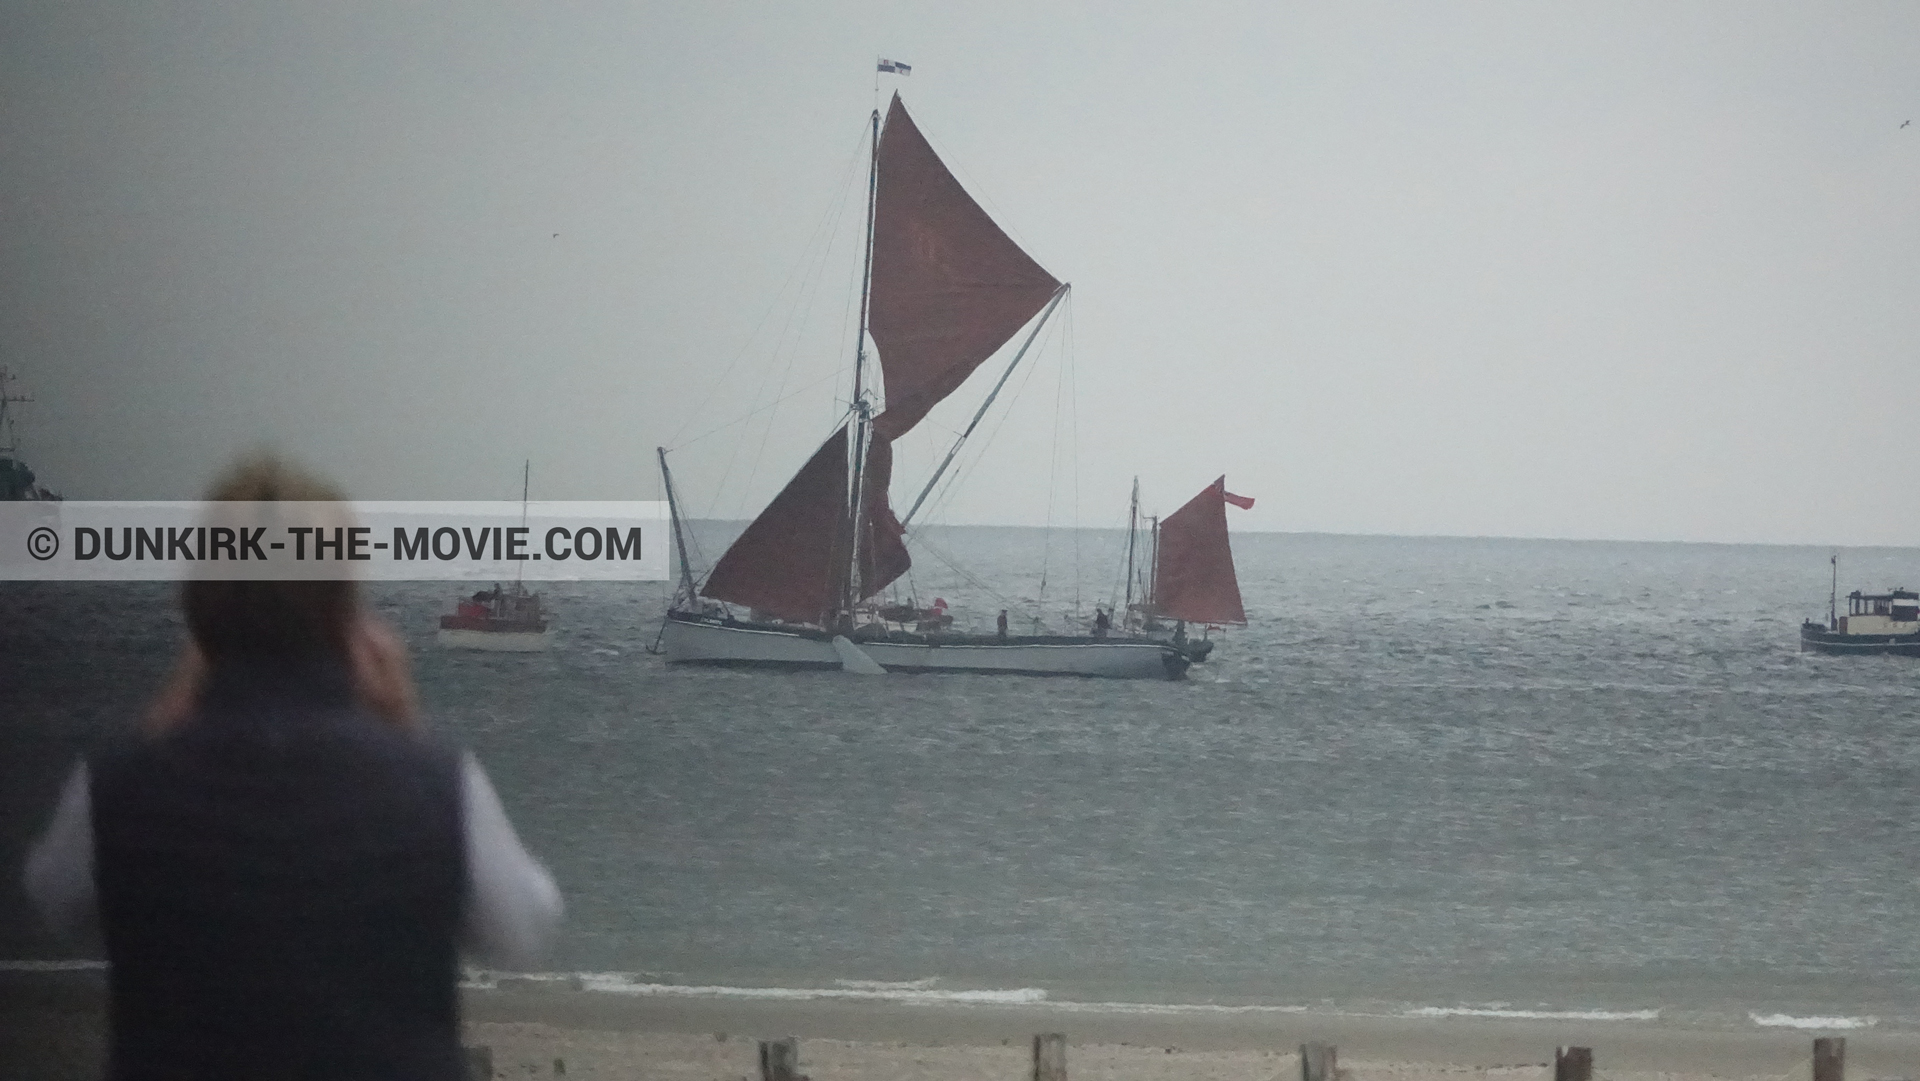 Picture with boat, grey sky, Xylonite,  from behind the scene of the Dunkirk movie by Nolan